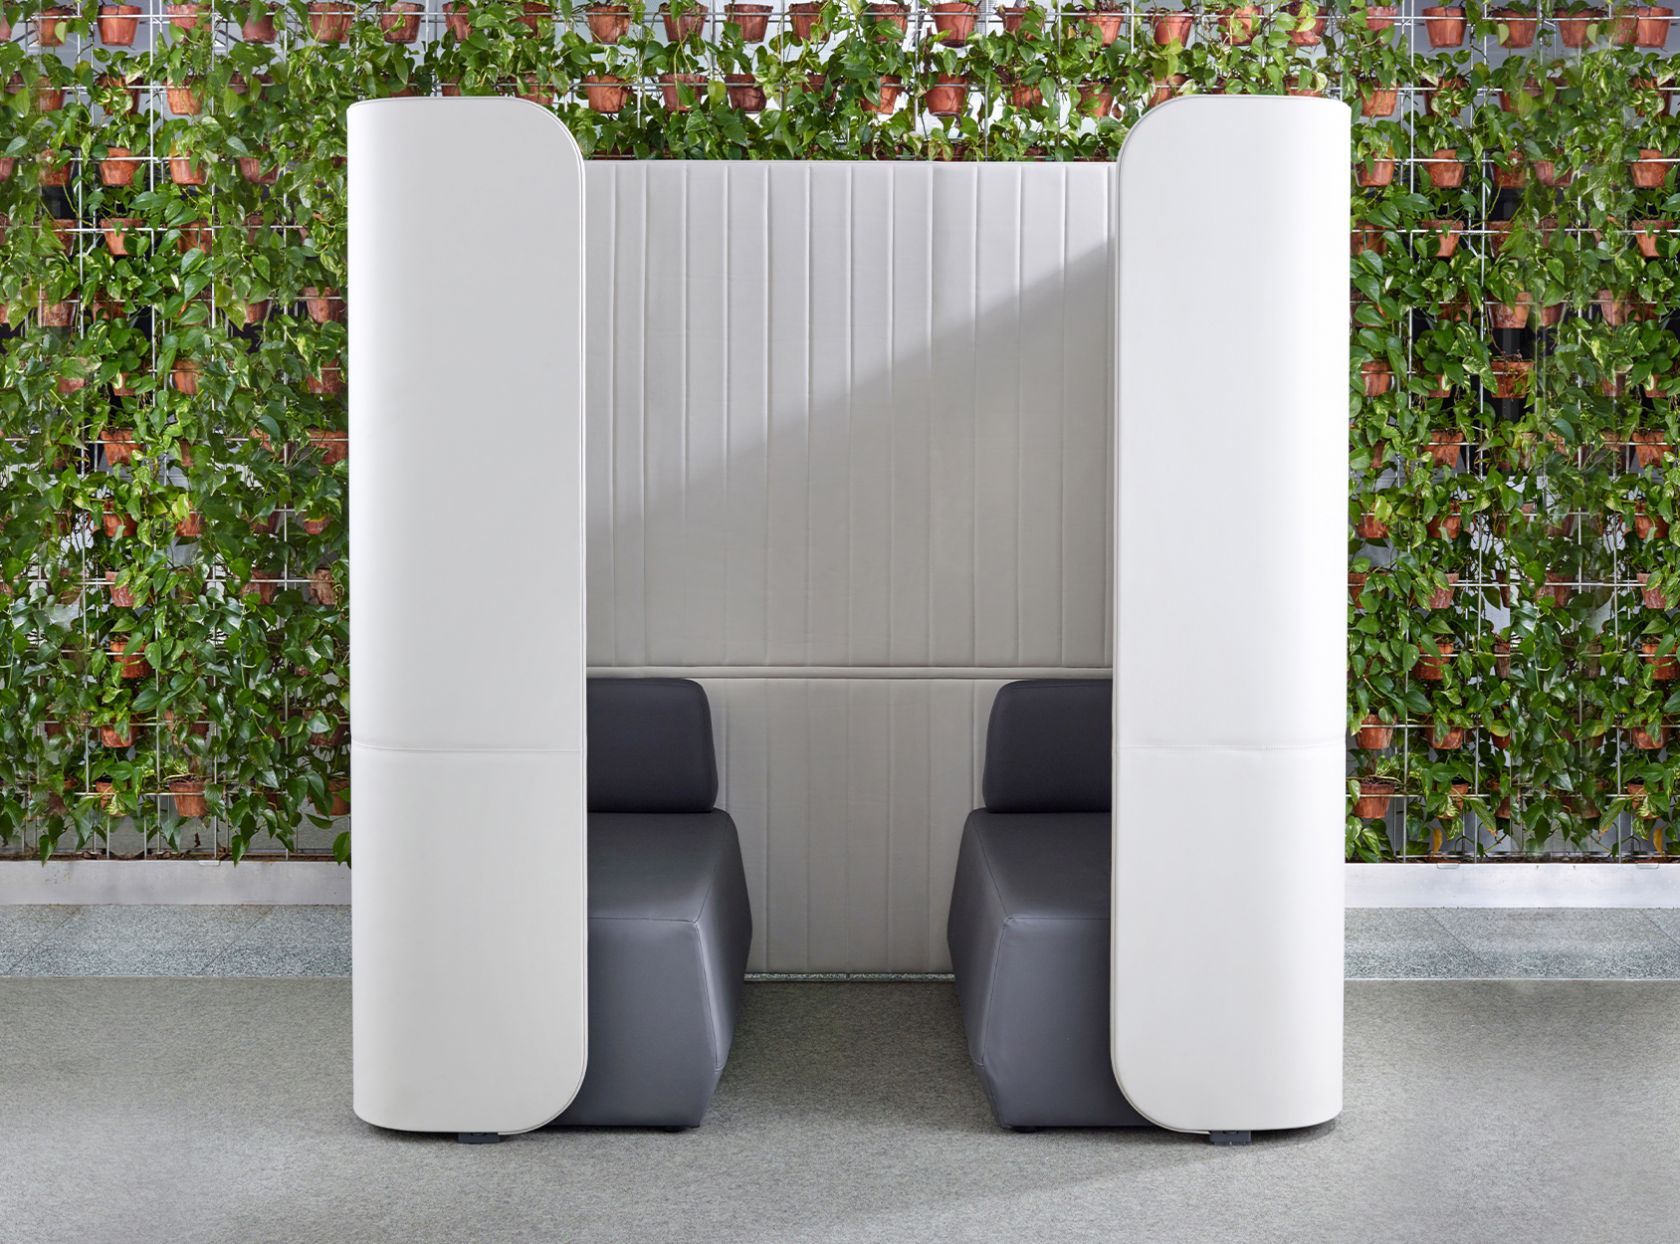 grey focus schiavello furniture booth with vertical garden